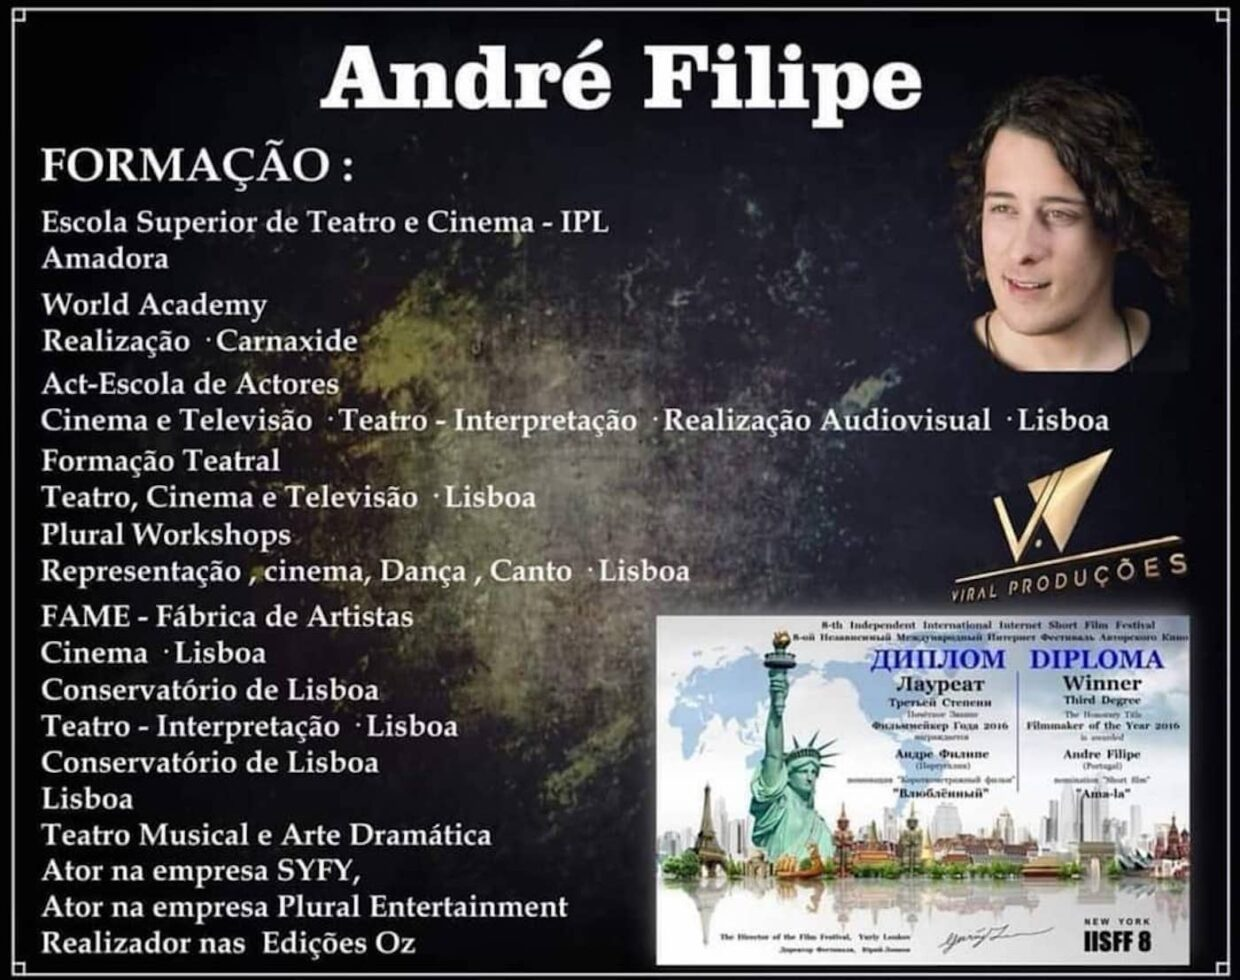 andre filipe formacao big brother